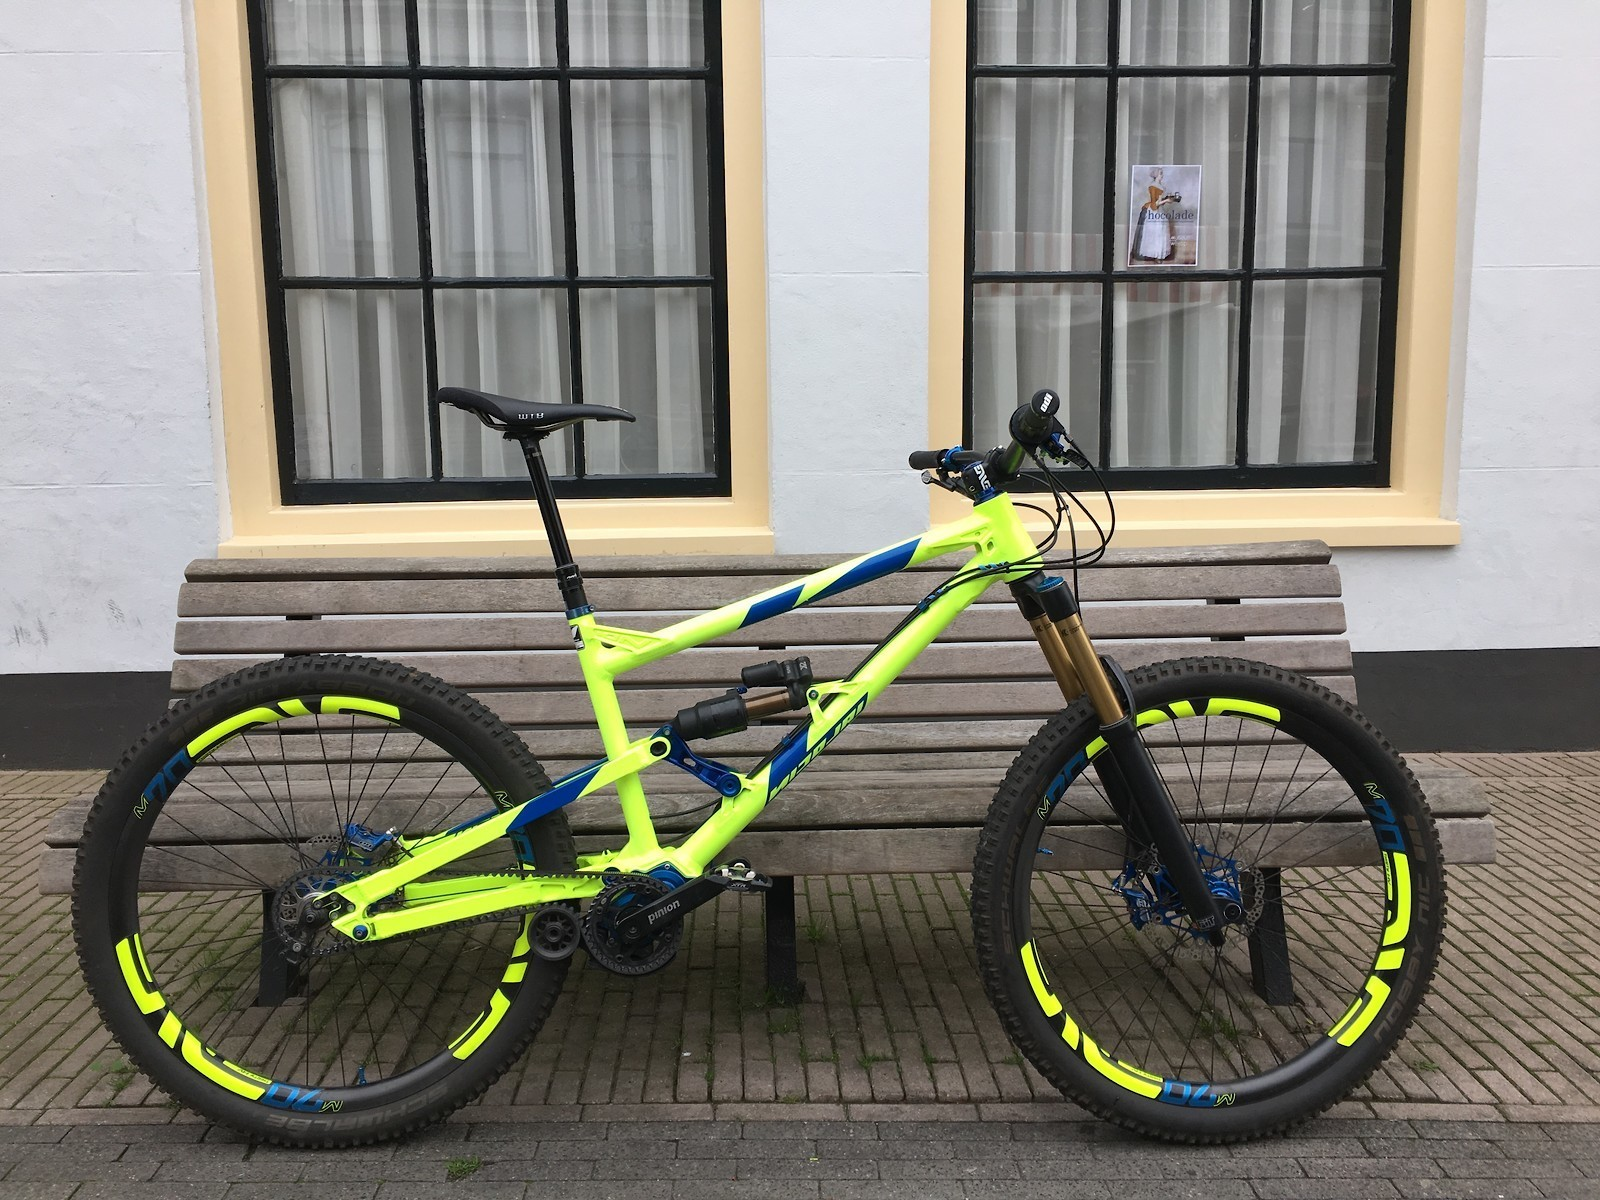 Nicolai G16 GPI - 2019 Vital Bike of the Day Collection - Mountain Biking Pictures - Vital MTB